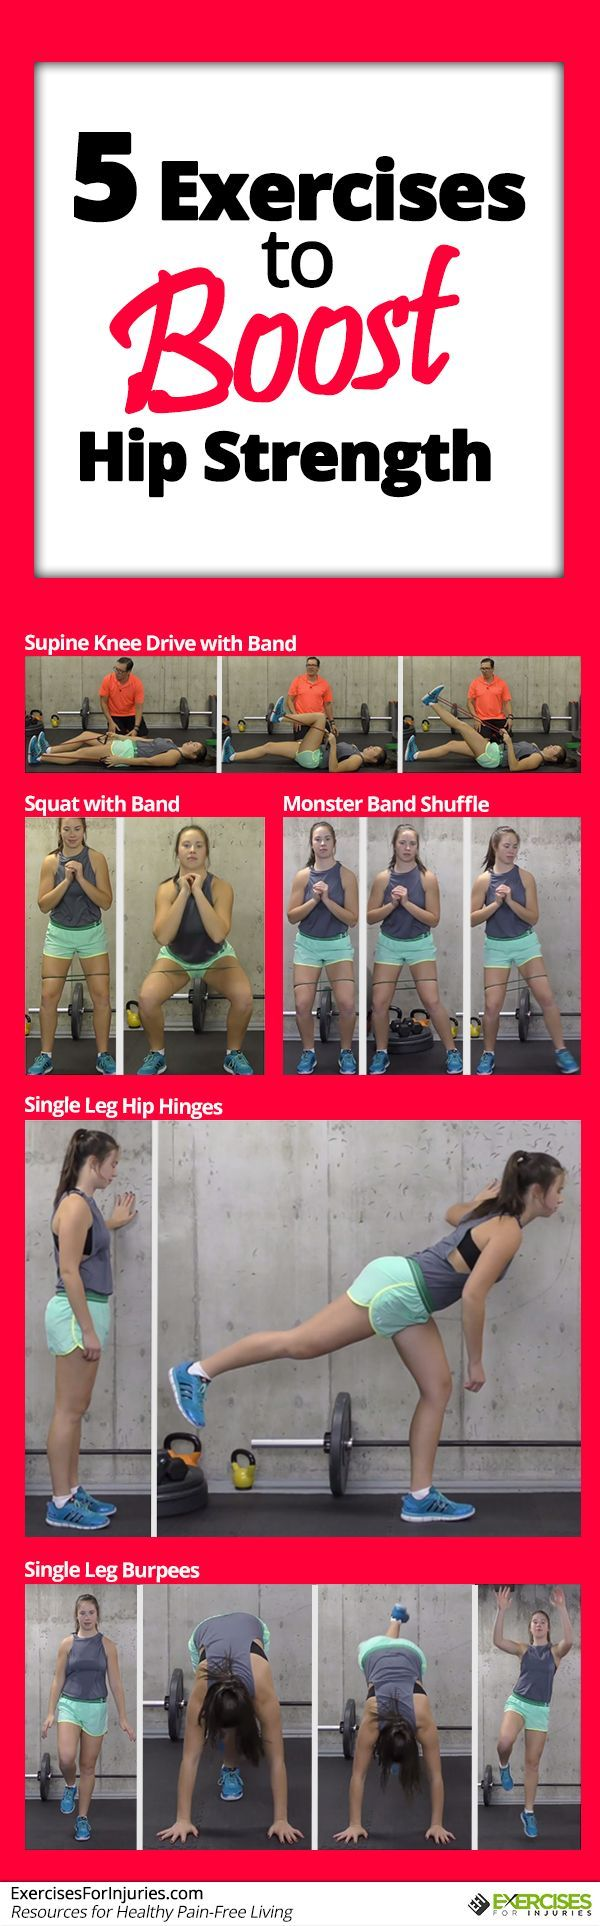 5 Exercises to Boost Hip Strength  Click here - http://exercisesforinjuries.com/5-exercises-to-boost-hip-strength/